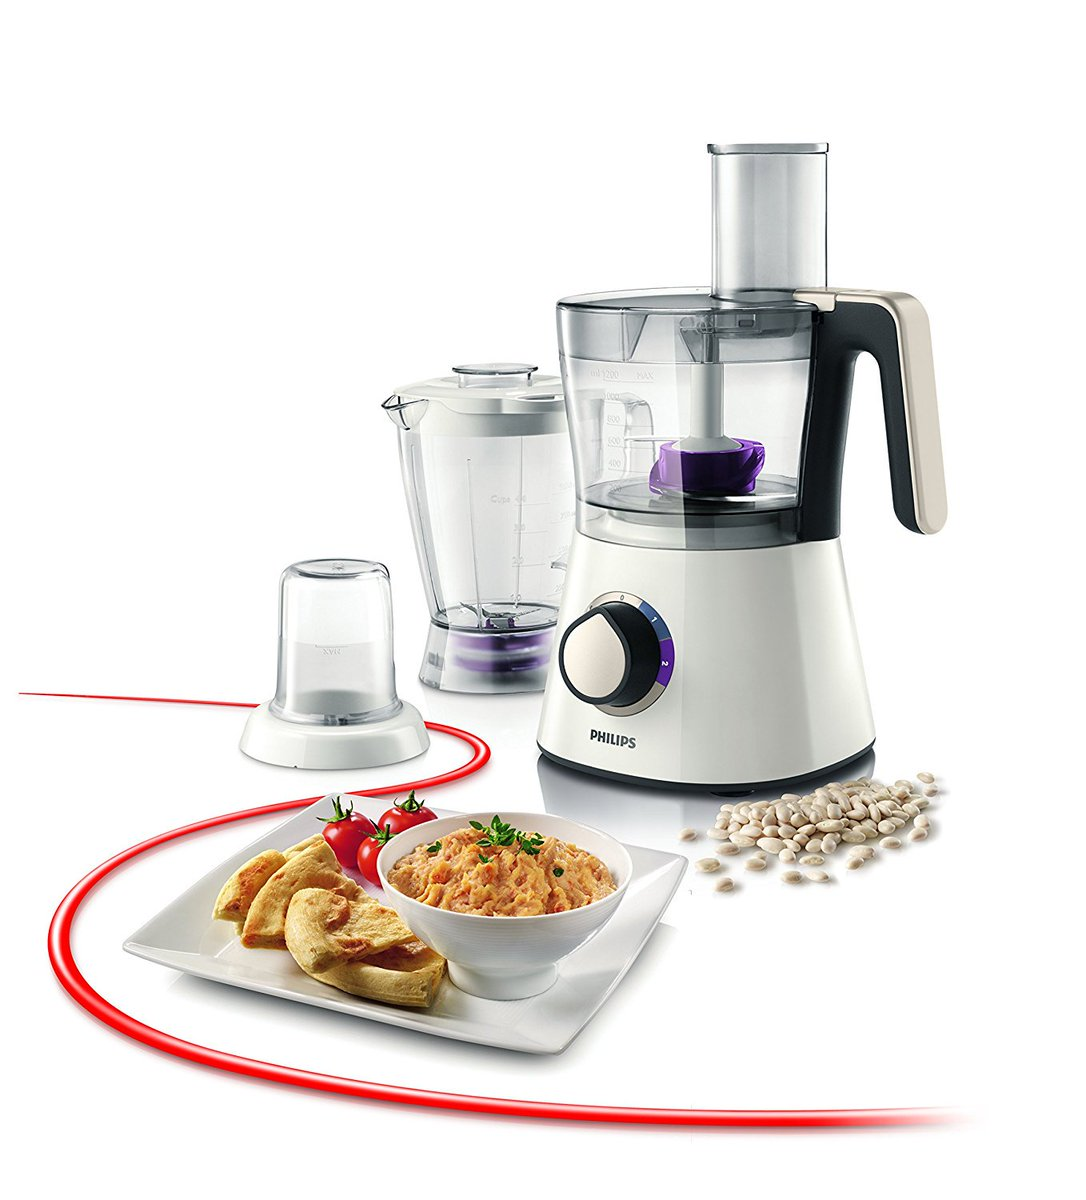 Kate's #DealoftheDay is this #Philips Kitchen Food Processor > http://wave105deals.co.uk < #home #house #cookingpic.twitter.com/s4G2MY0Be2